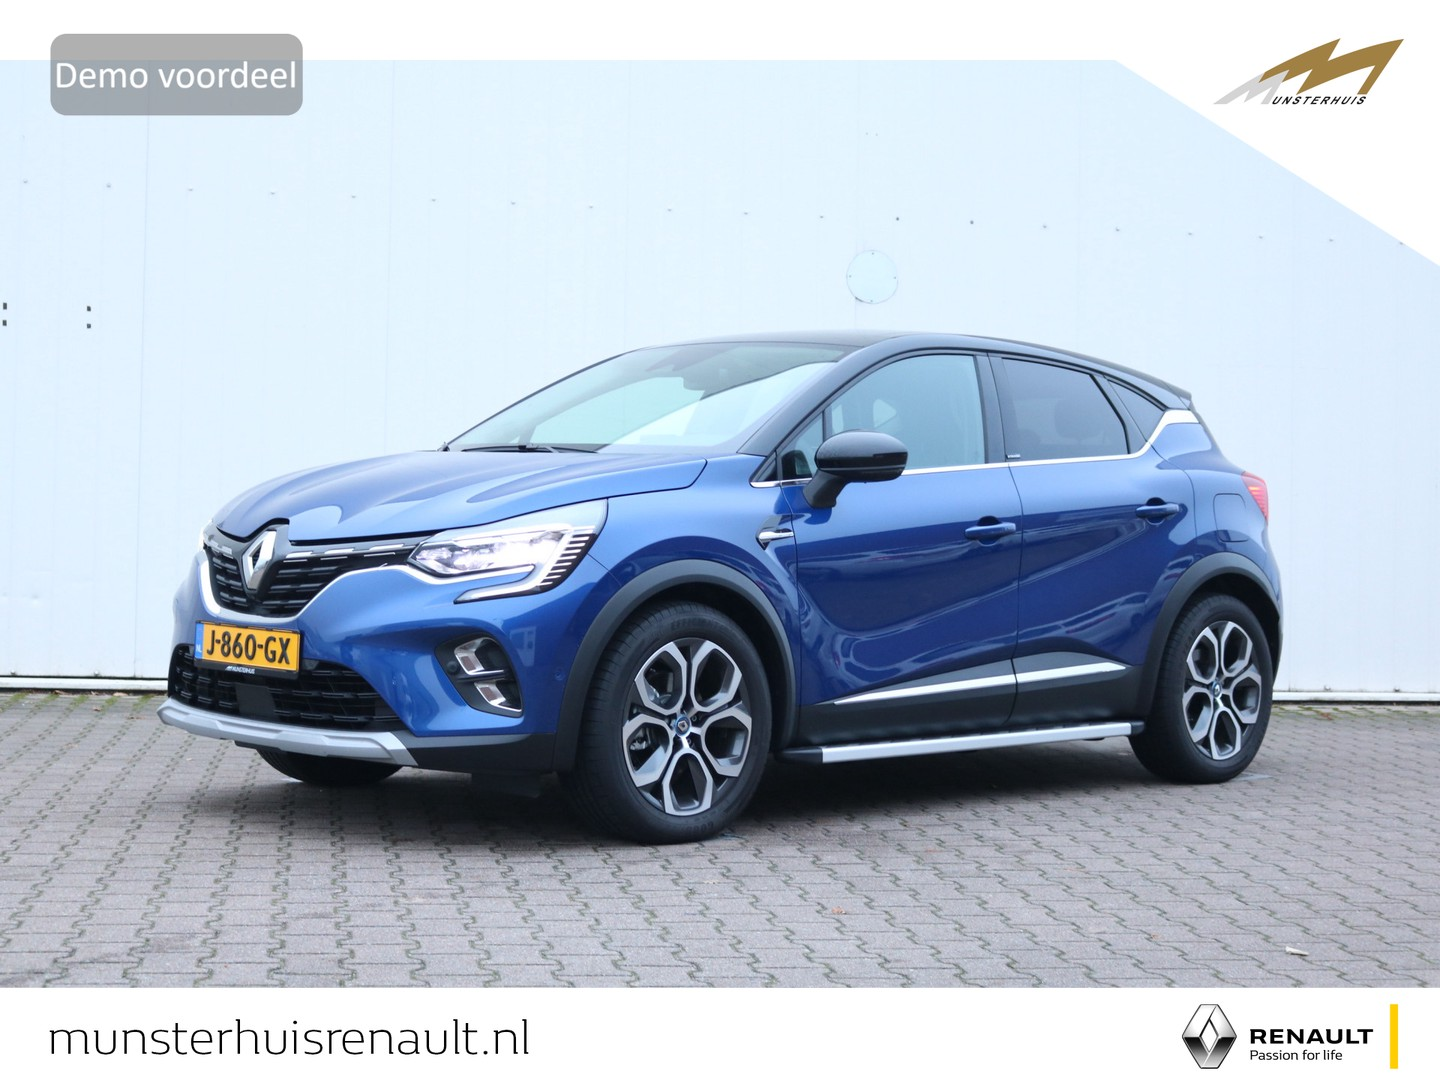 Renault Captur Plug-in hybrid 160 edition one - demo - hybride